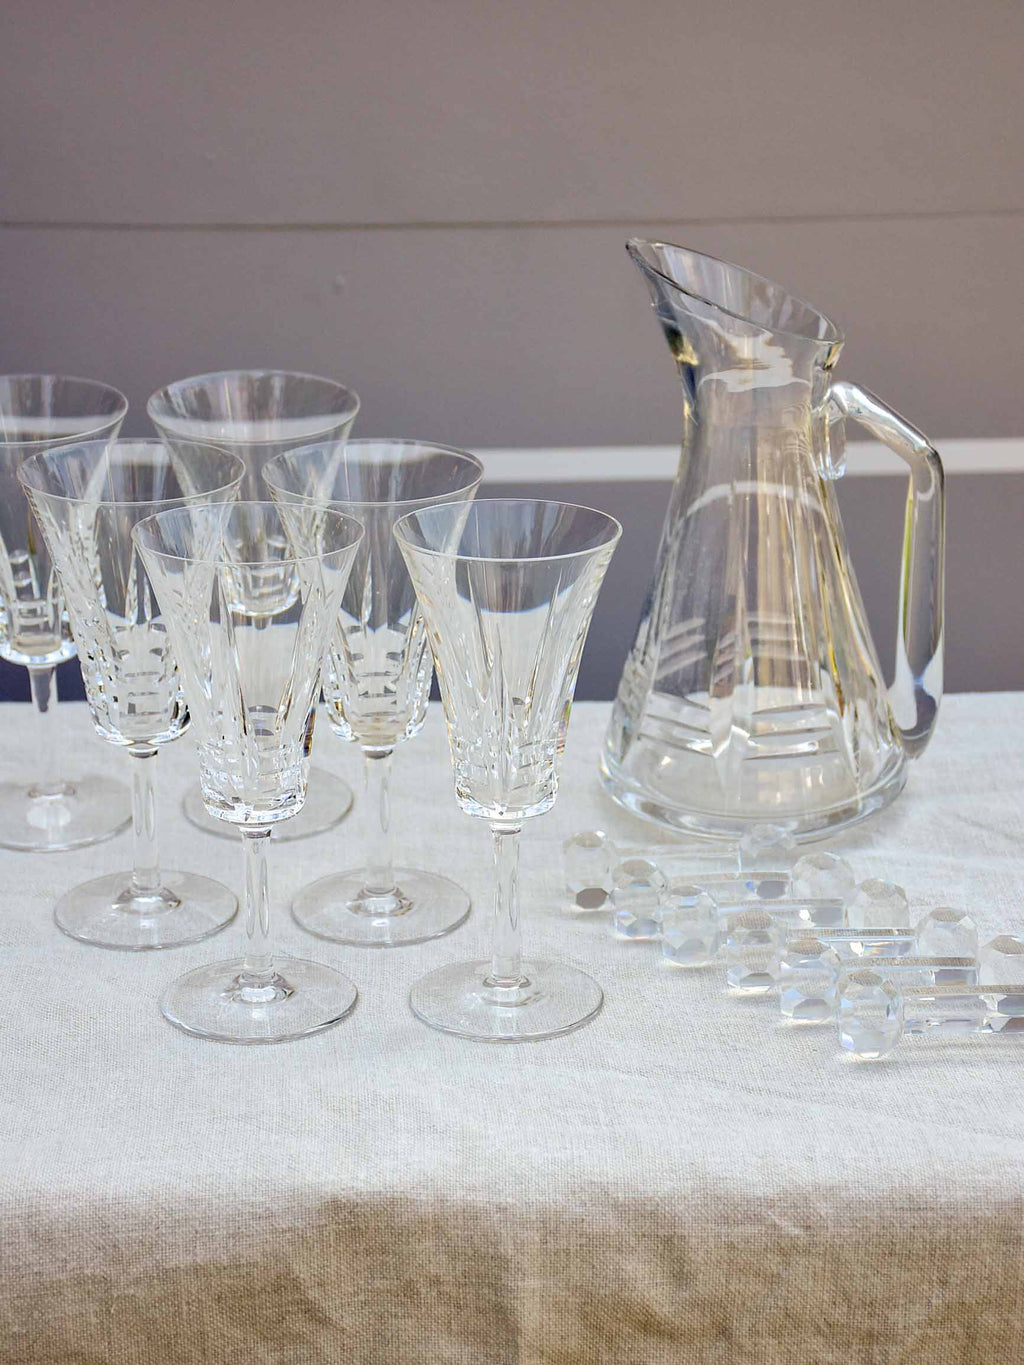 Vintage French crystal set of wine glasses, carafe and knife rests